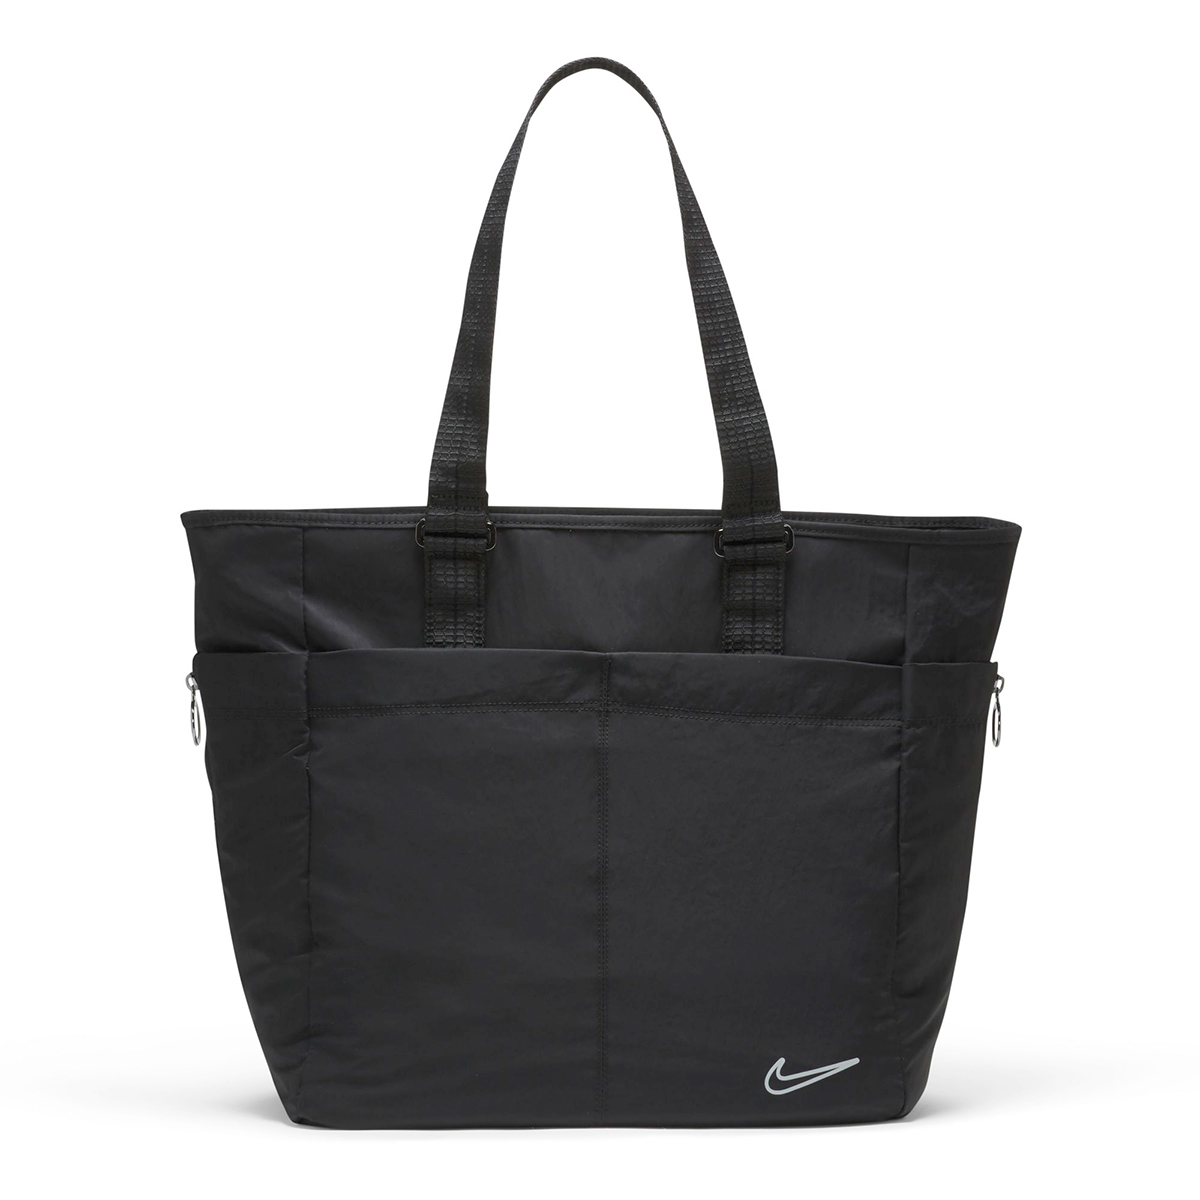 Women's Nike One Luxe Tote Bag - Color: Black, Black, large, image 1